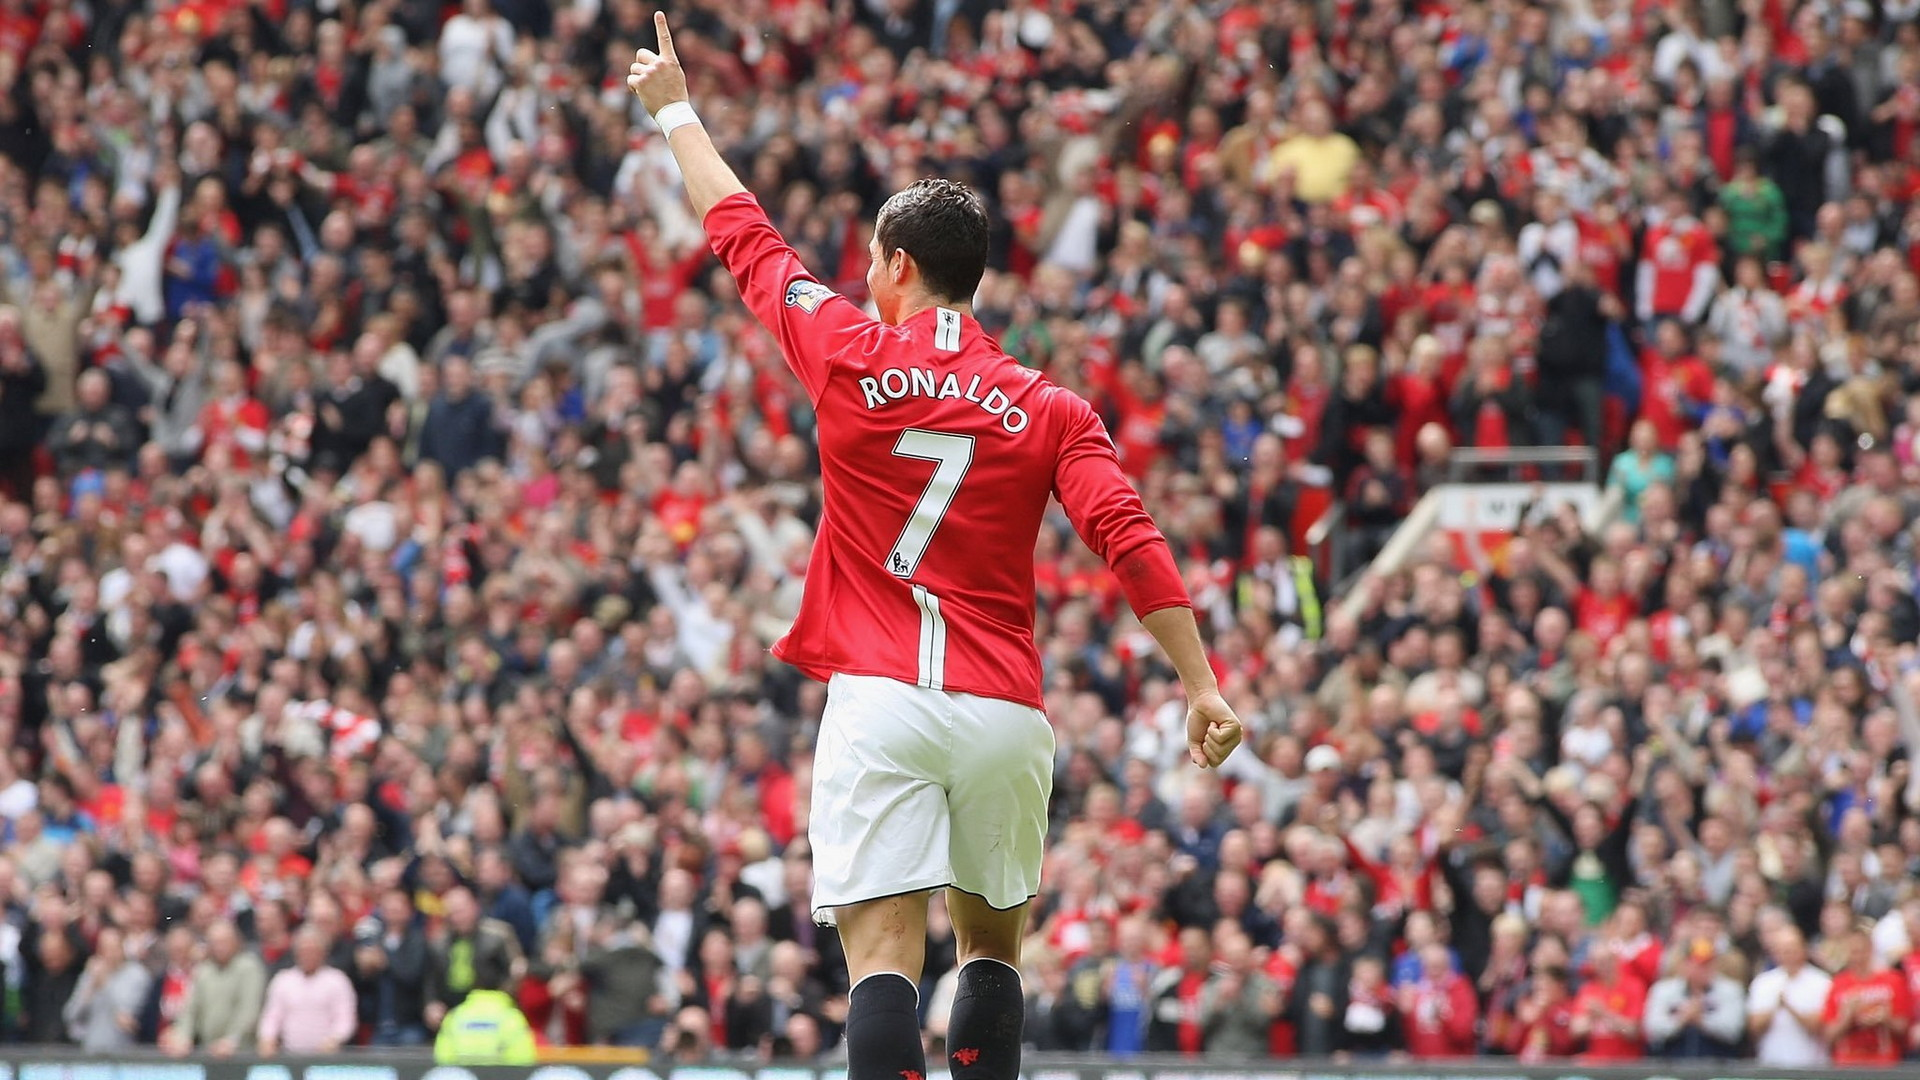 Cristiano Ronaldo Manchester United HD Wallpapers with high-resolution 1920x1080 pixel. You can use this wallpaper for your Desktop Computers, Mac Screensavers, Windows Backgrounds, iPhone Wallpapers, Tablet or Android Lock screen and another Mobile device